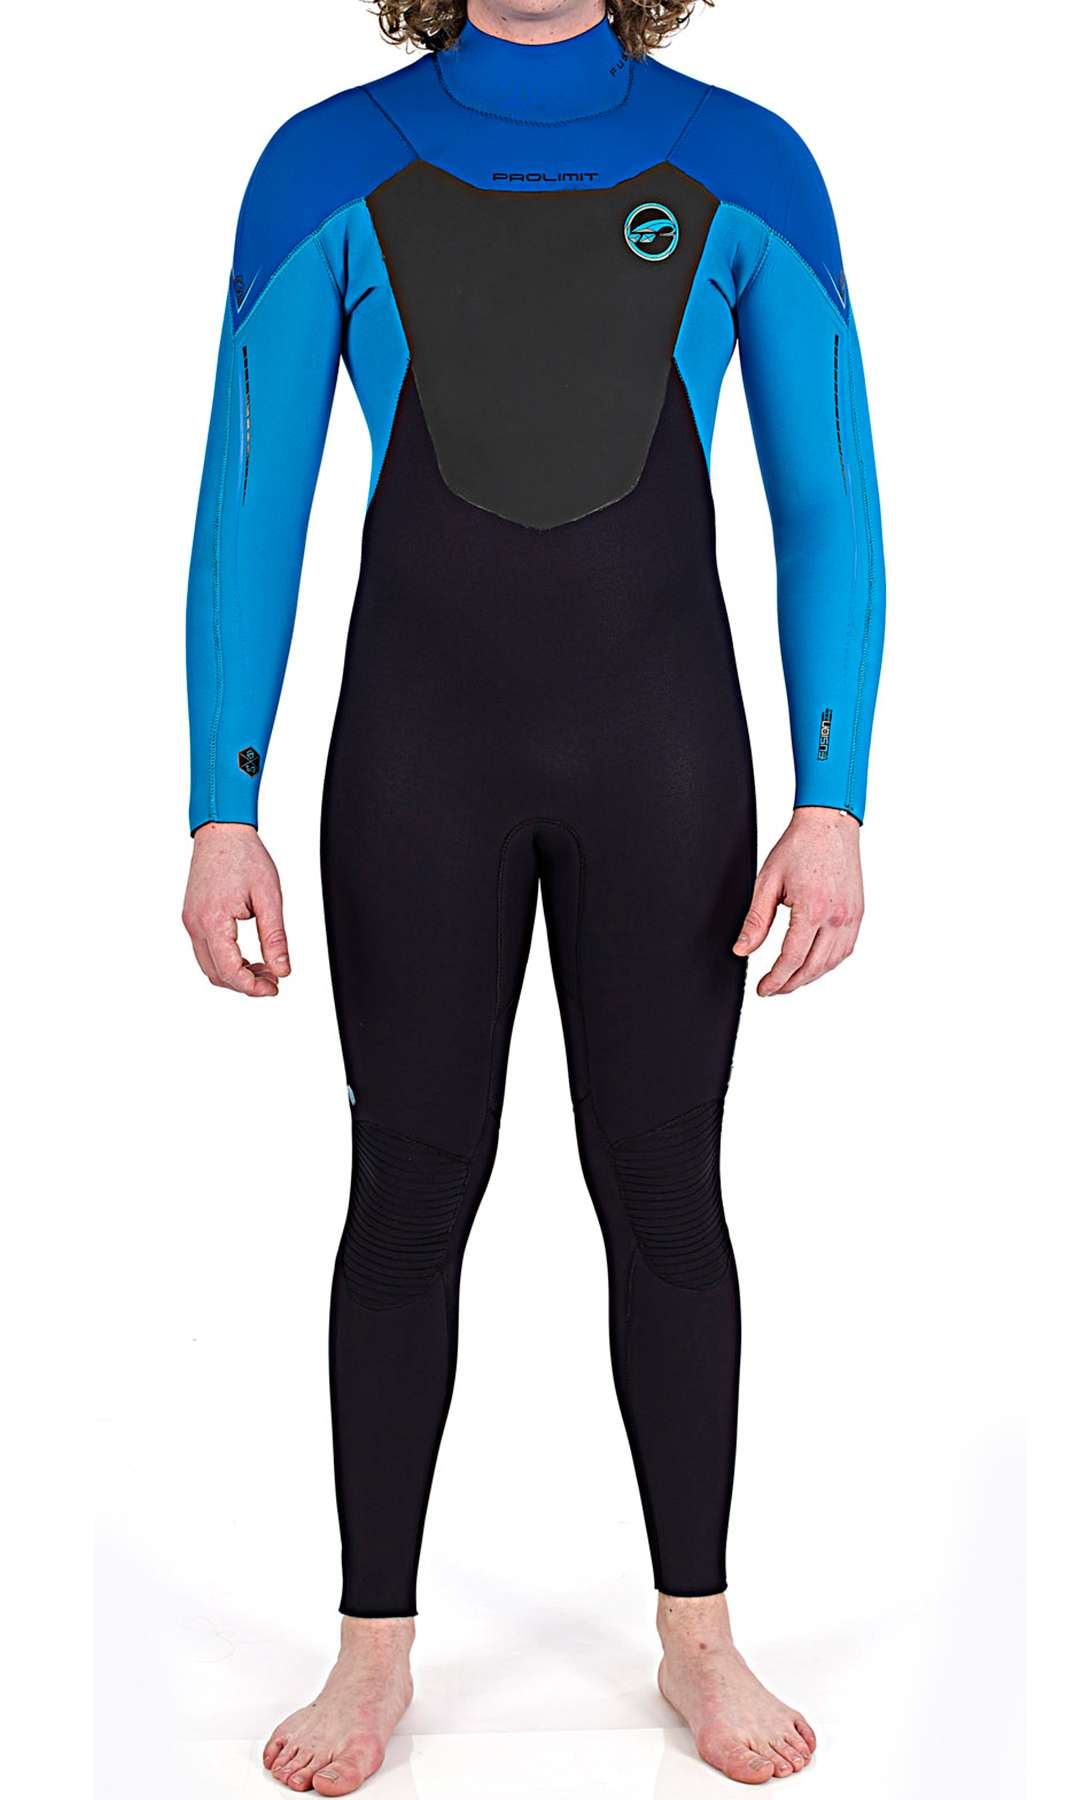 Prolimit 53 Fusion DL Wetsuit 2015 King Of Watersports